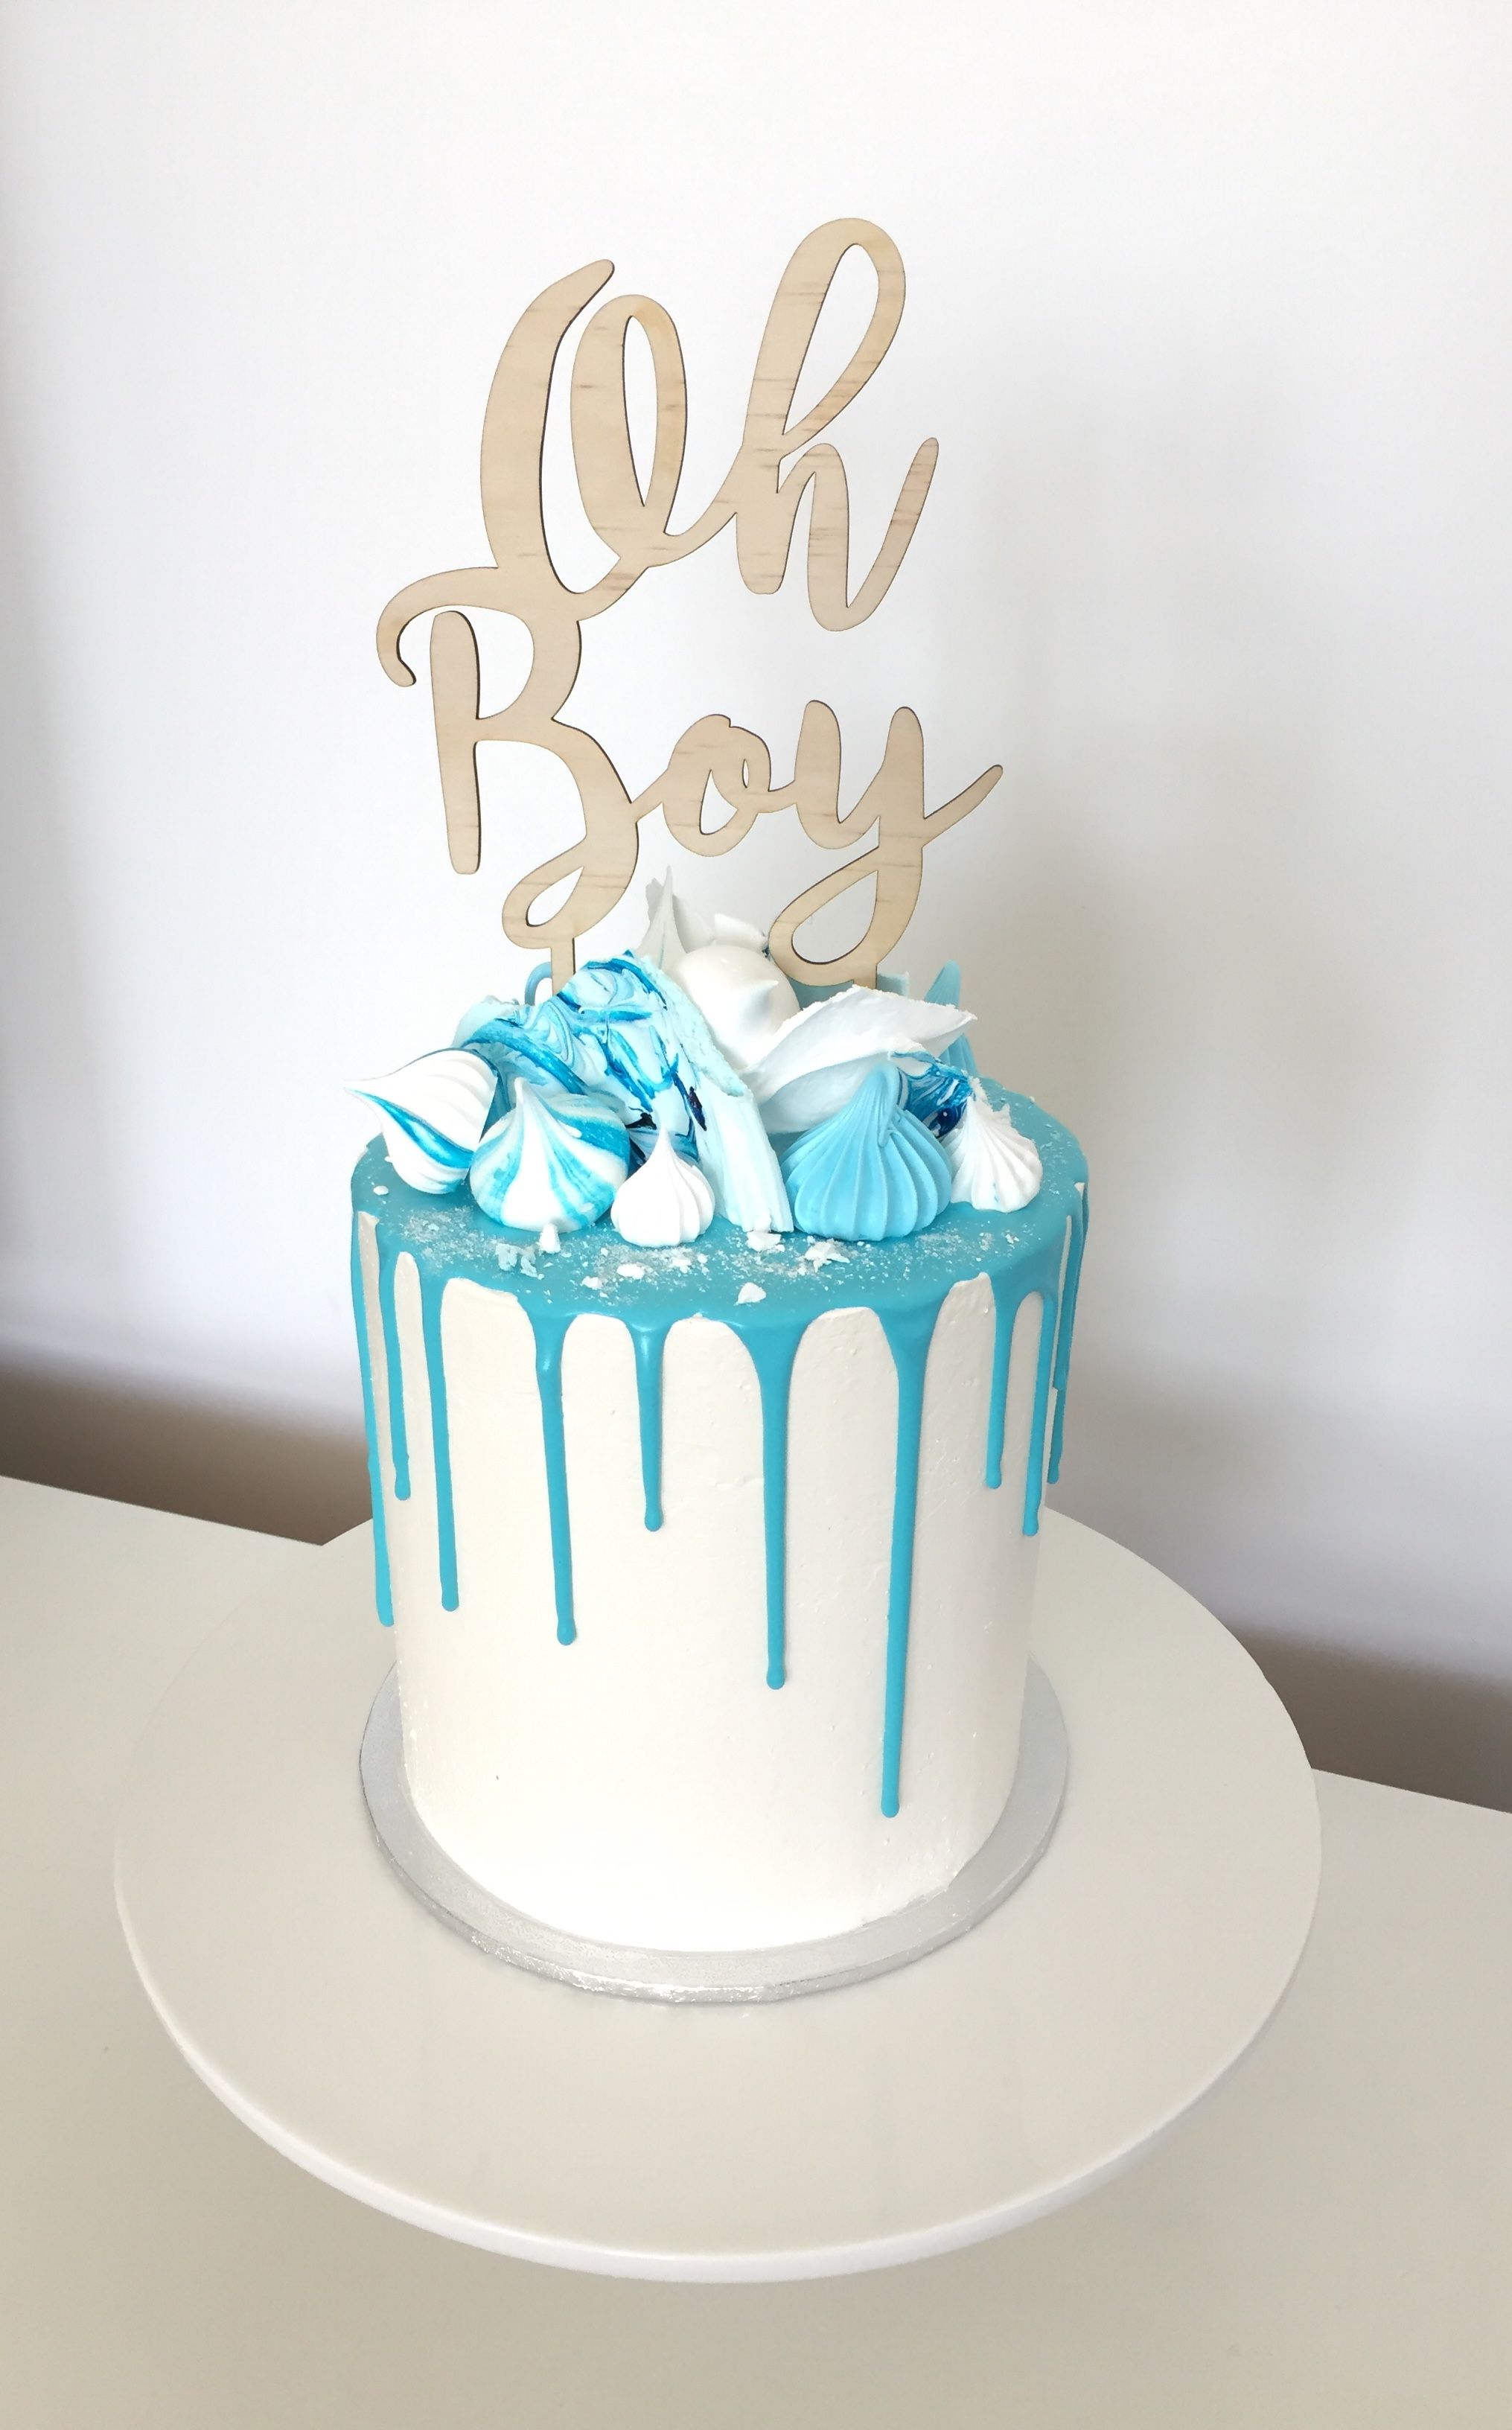 abce6f225 Baby Shower Drip Cake #meringues #meringueshards Cake topper by Katrina  Louise Designs on Etsy